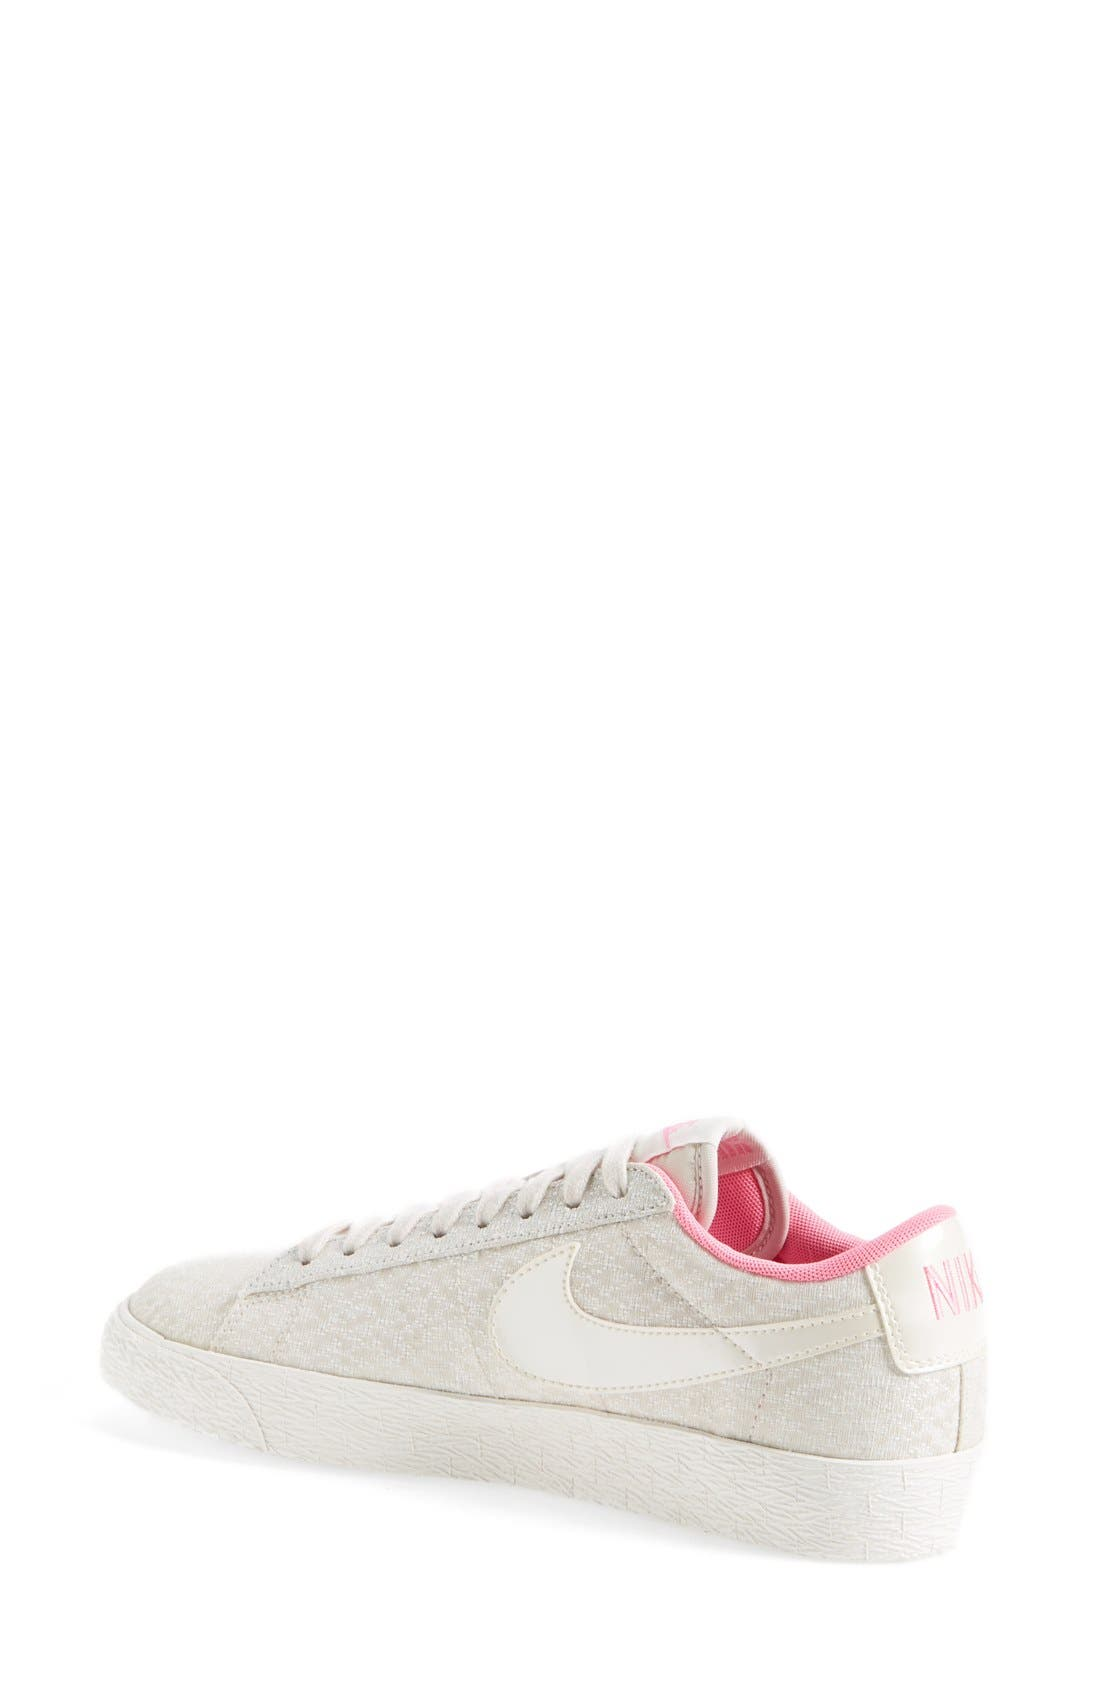 Alternate Image 2  - Nike 'Blazer' Low-Top Sneaker (Women)